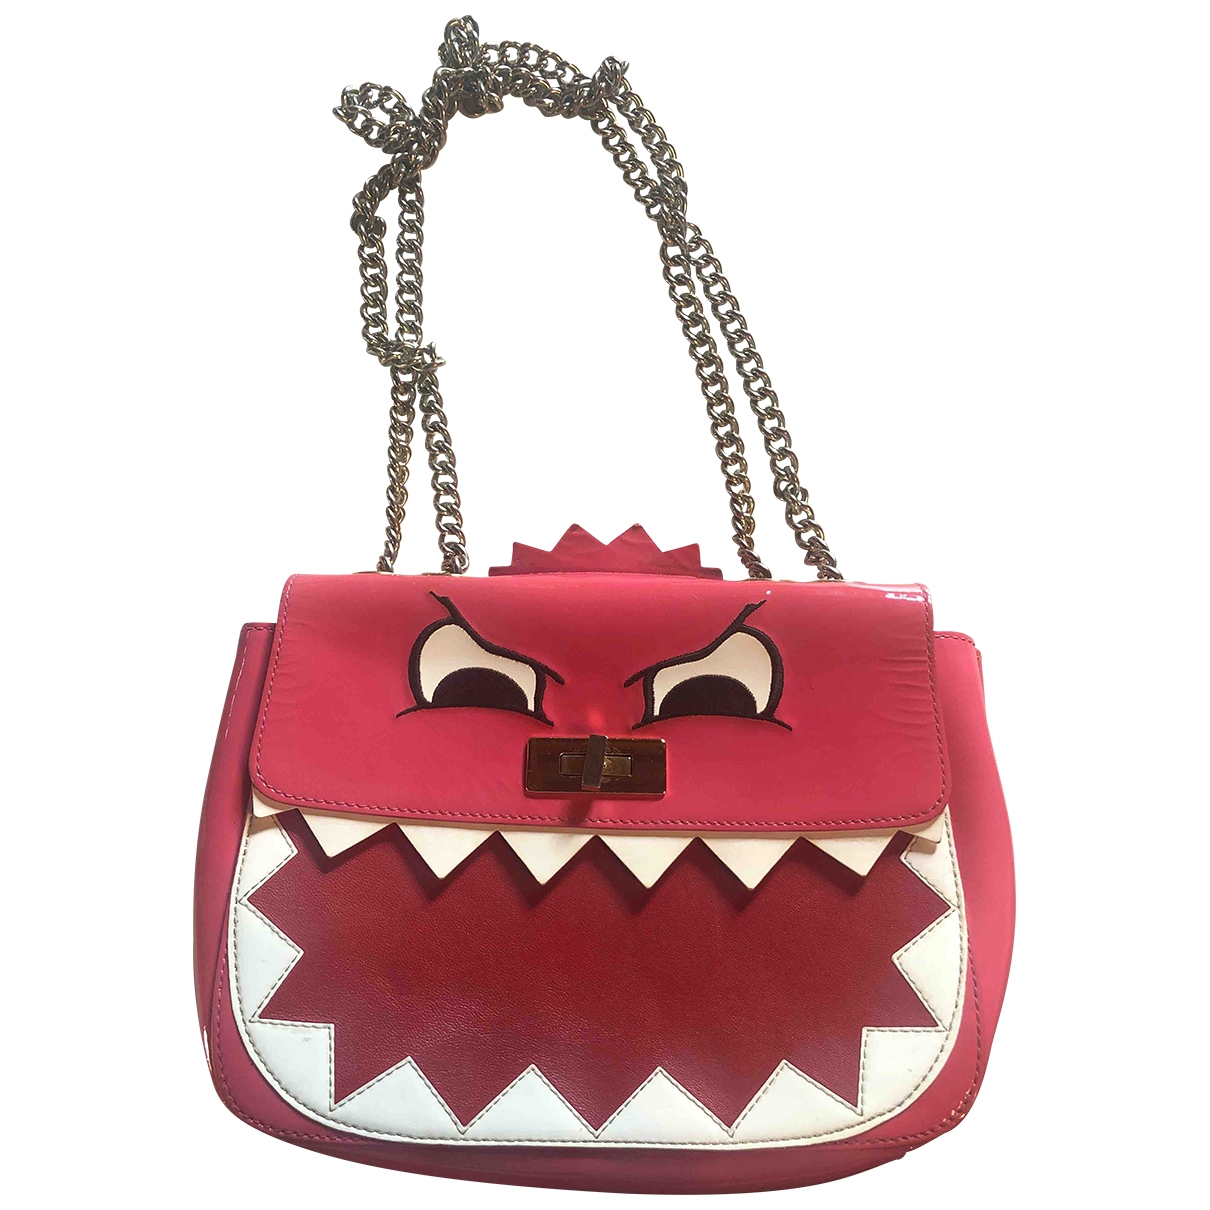 Moschino Cheap And Chic \N Pink Patent leather handbag for Women \N